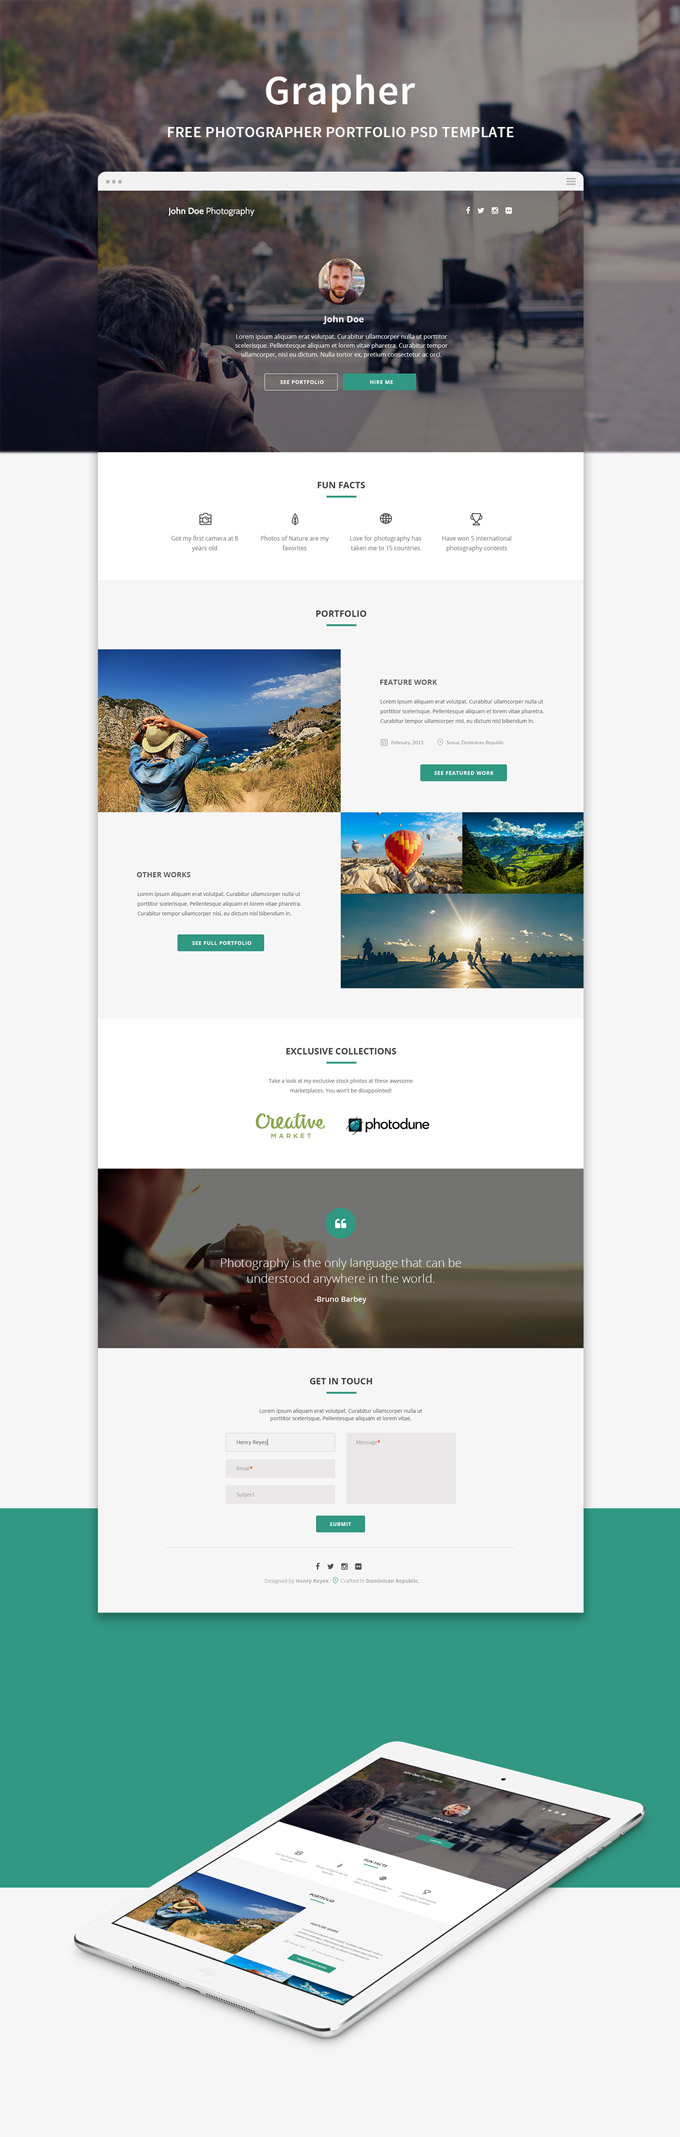 Grapher photographer portfolio web template